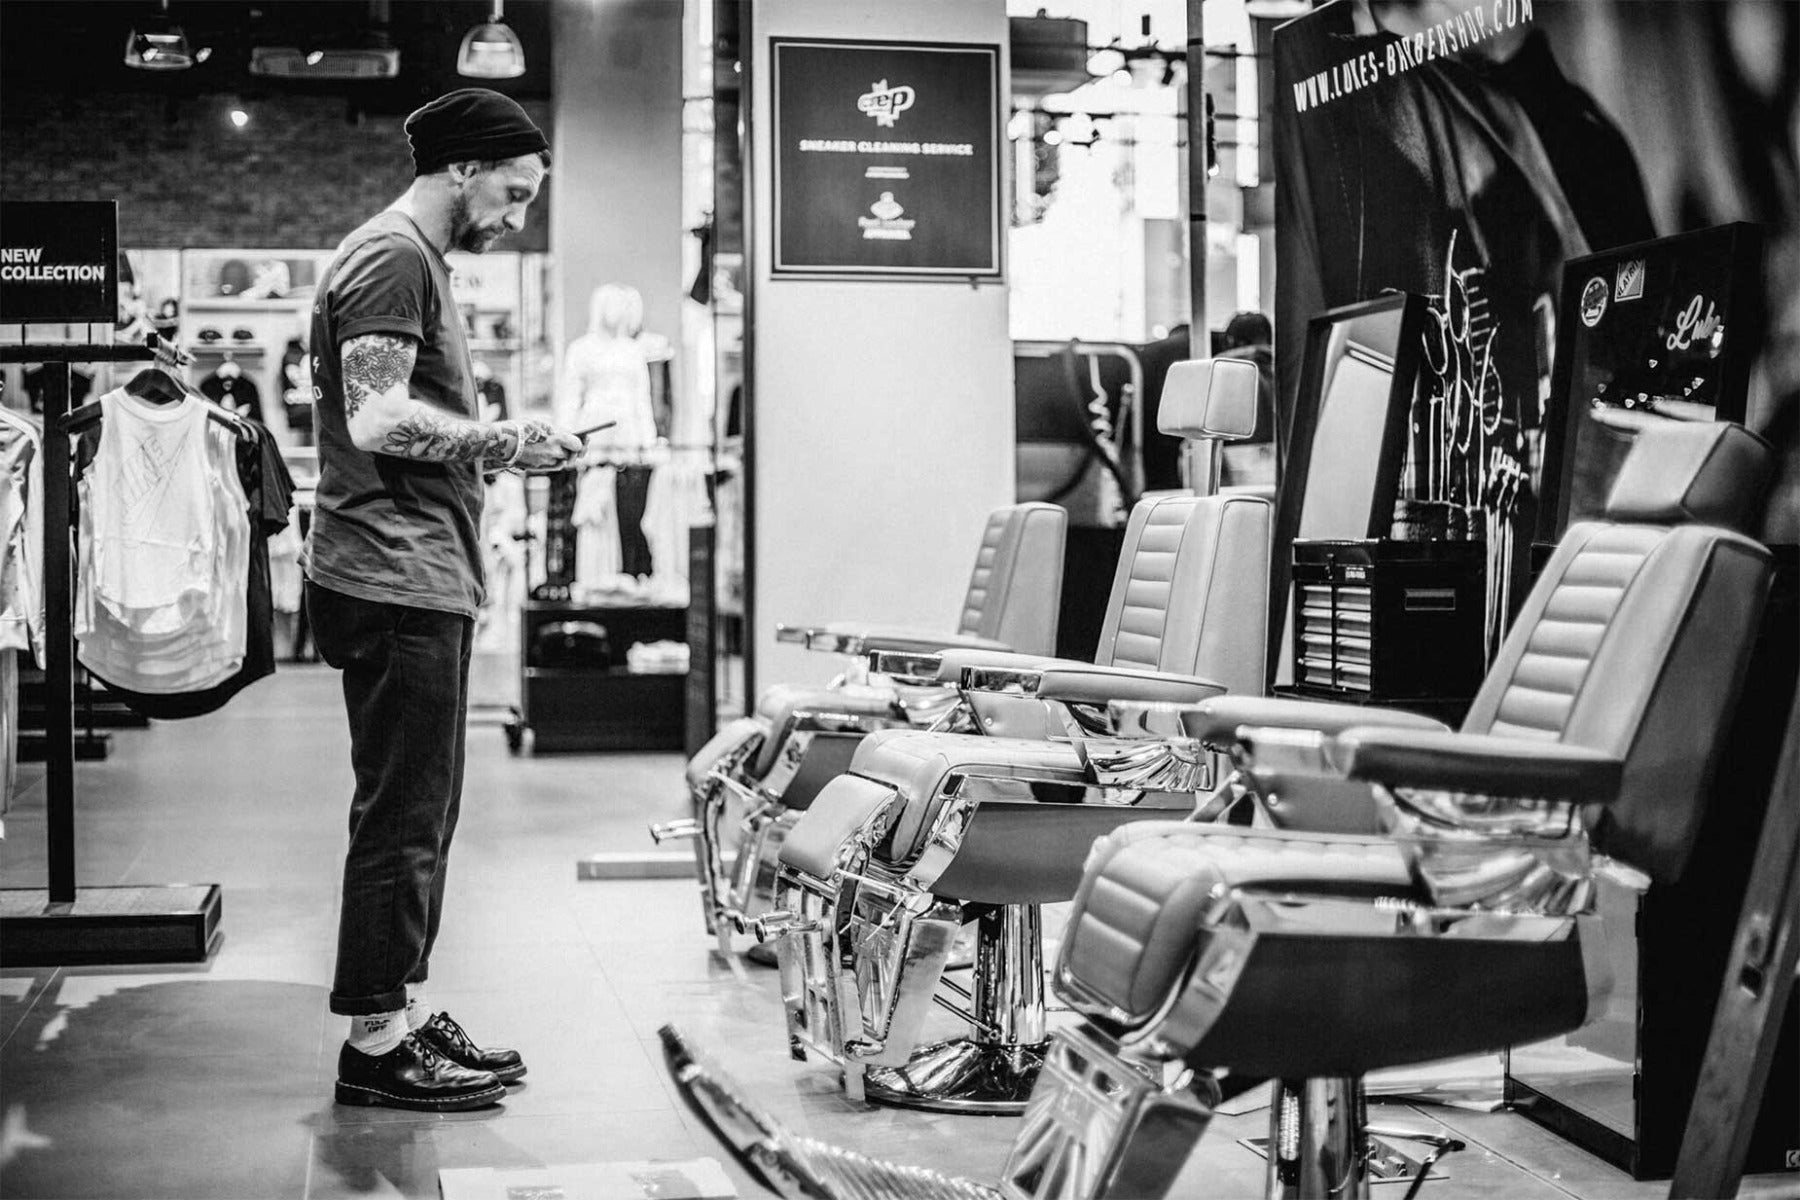 Man inspecting barber chairs